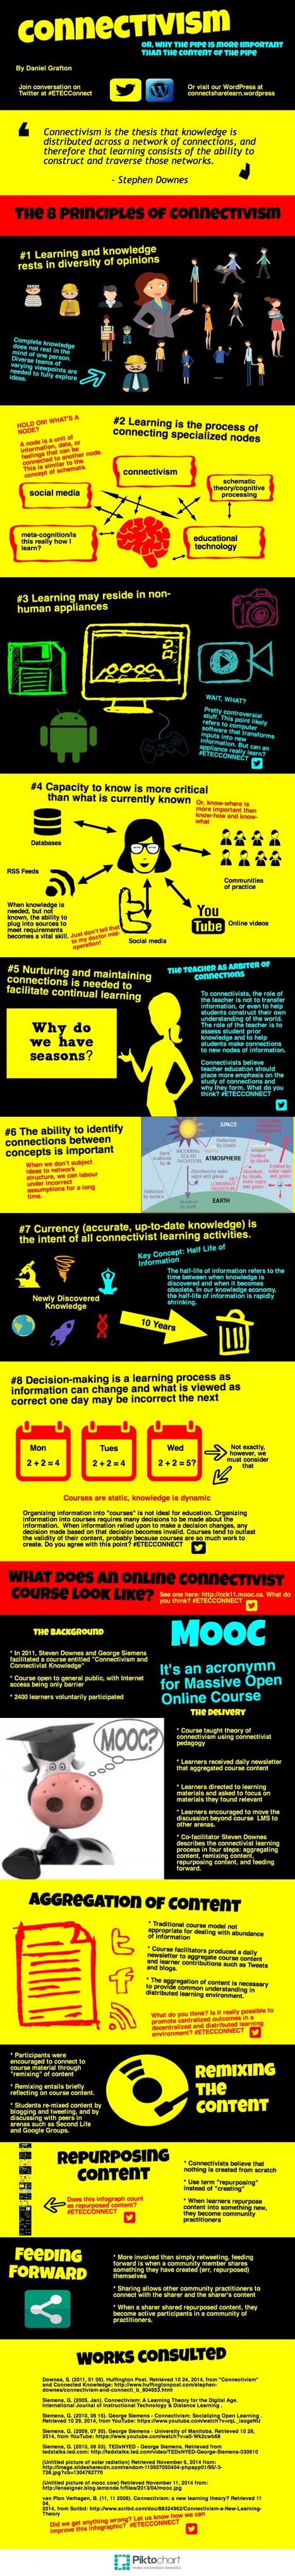 Connectivism [Infographic] | Purposeful Pedagogy | Scoop.it